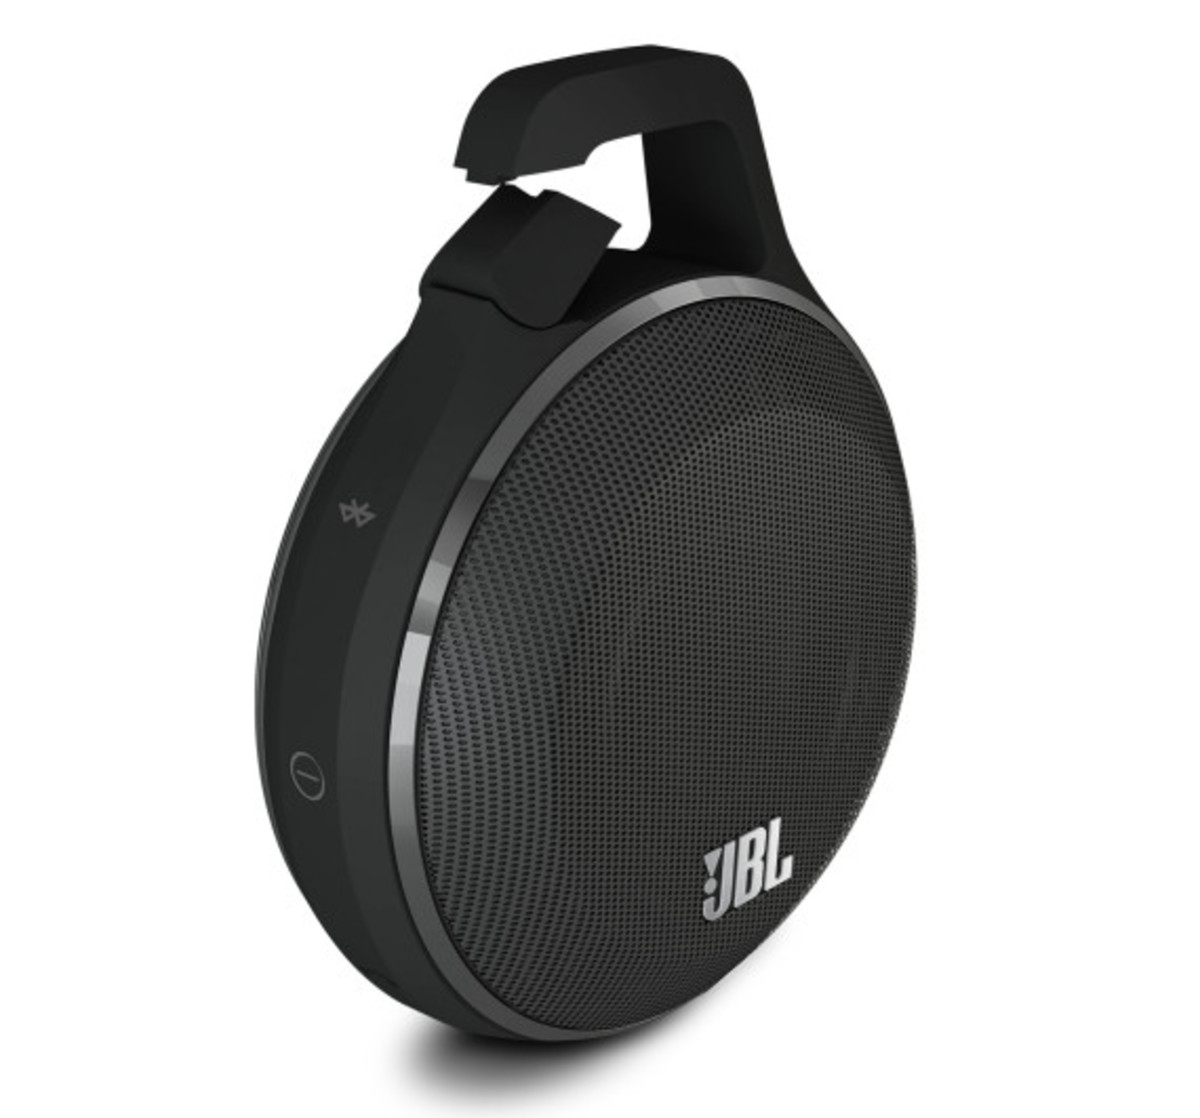 jbl-clip-ultra-compact-portable-wireless-bluetooth-speaker-05